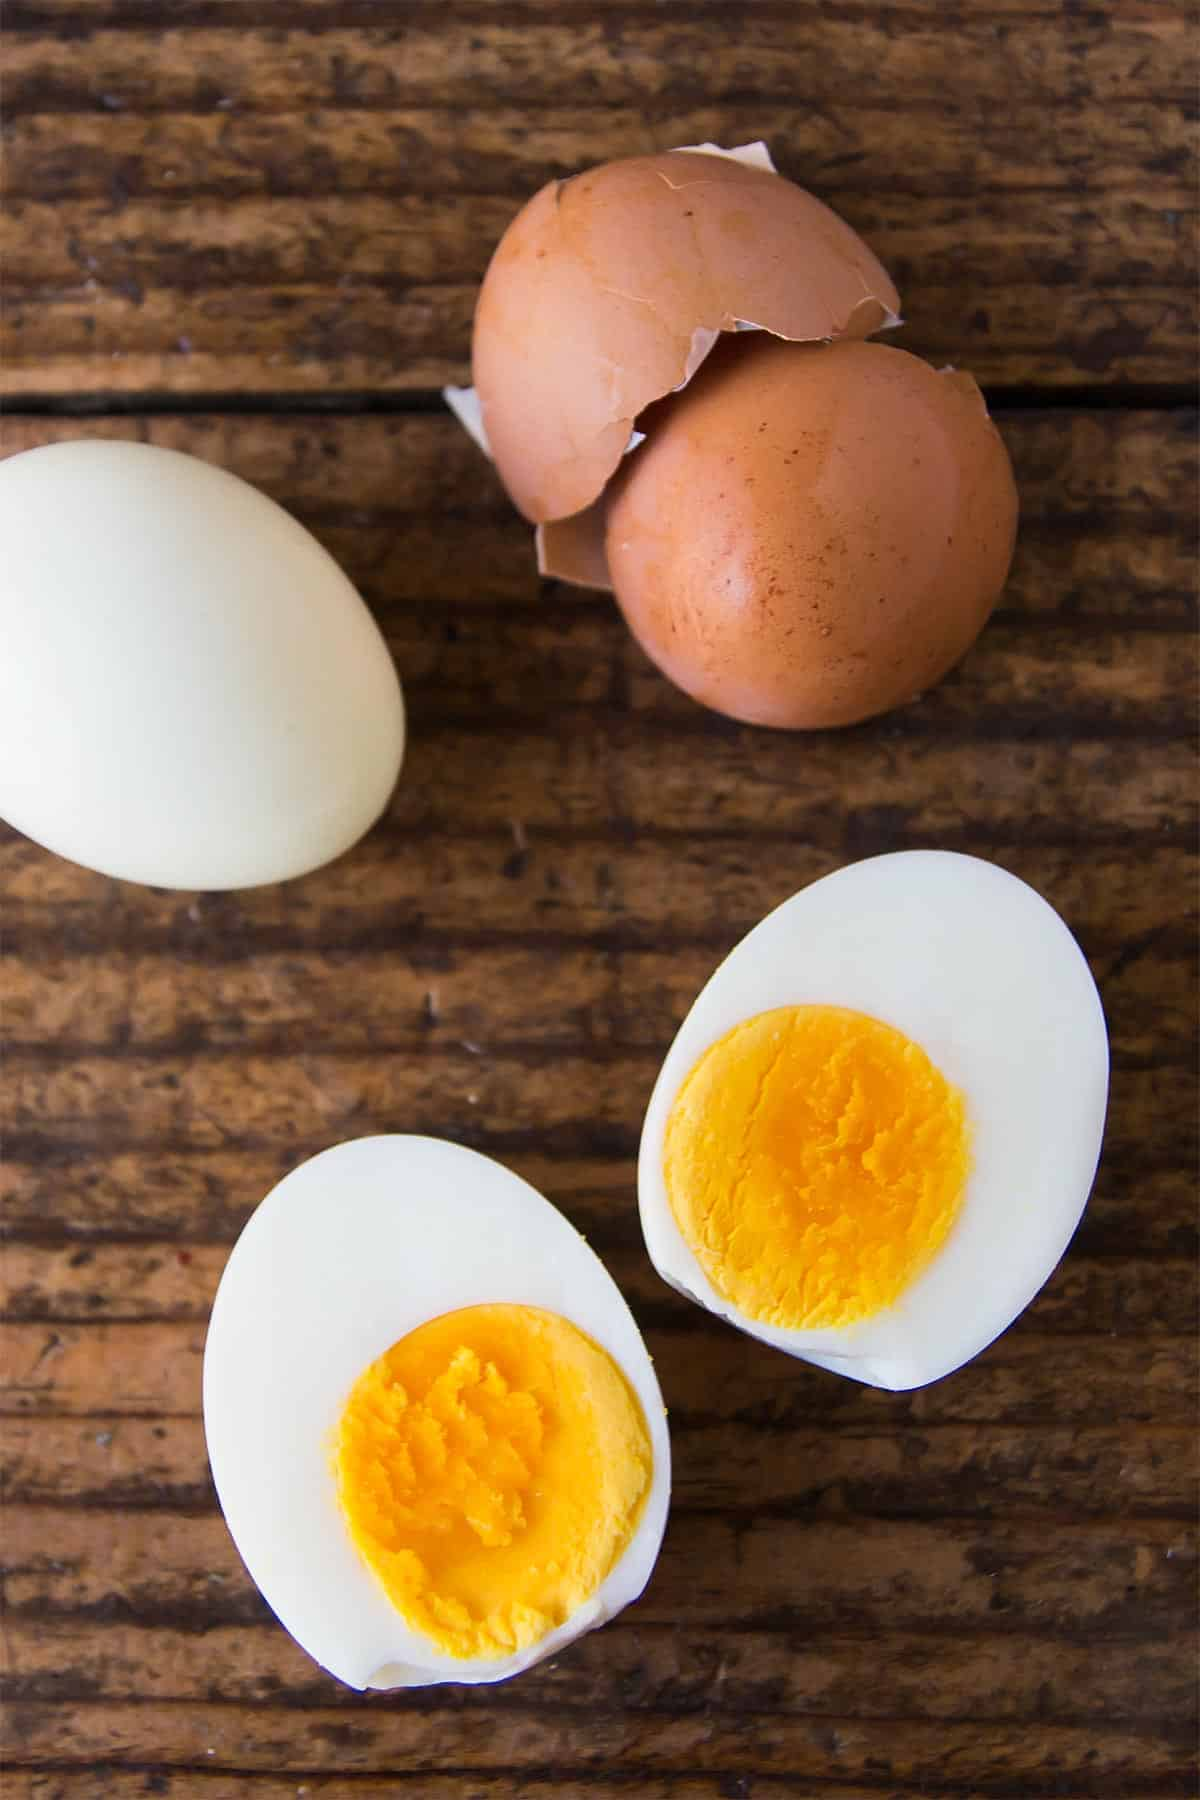 Inside of Pressure Cooked Eggs